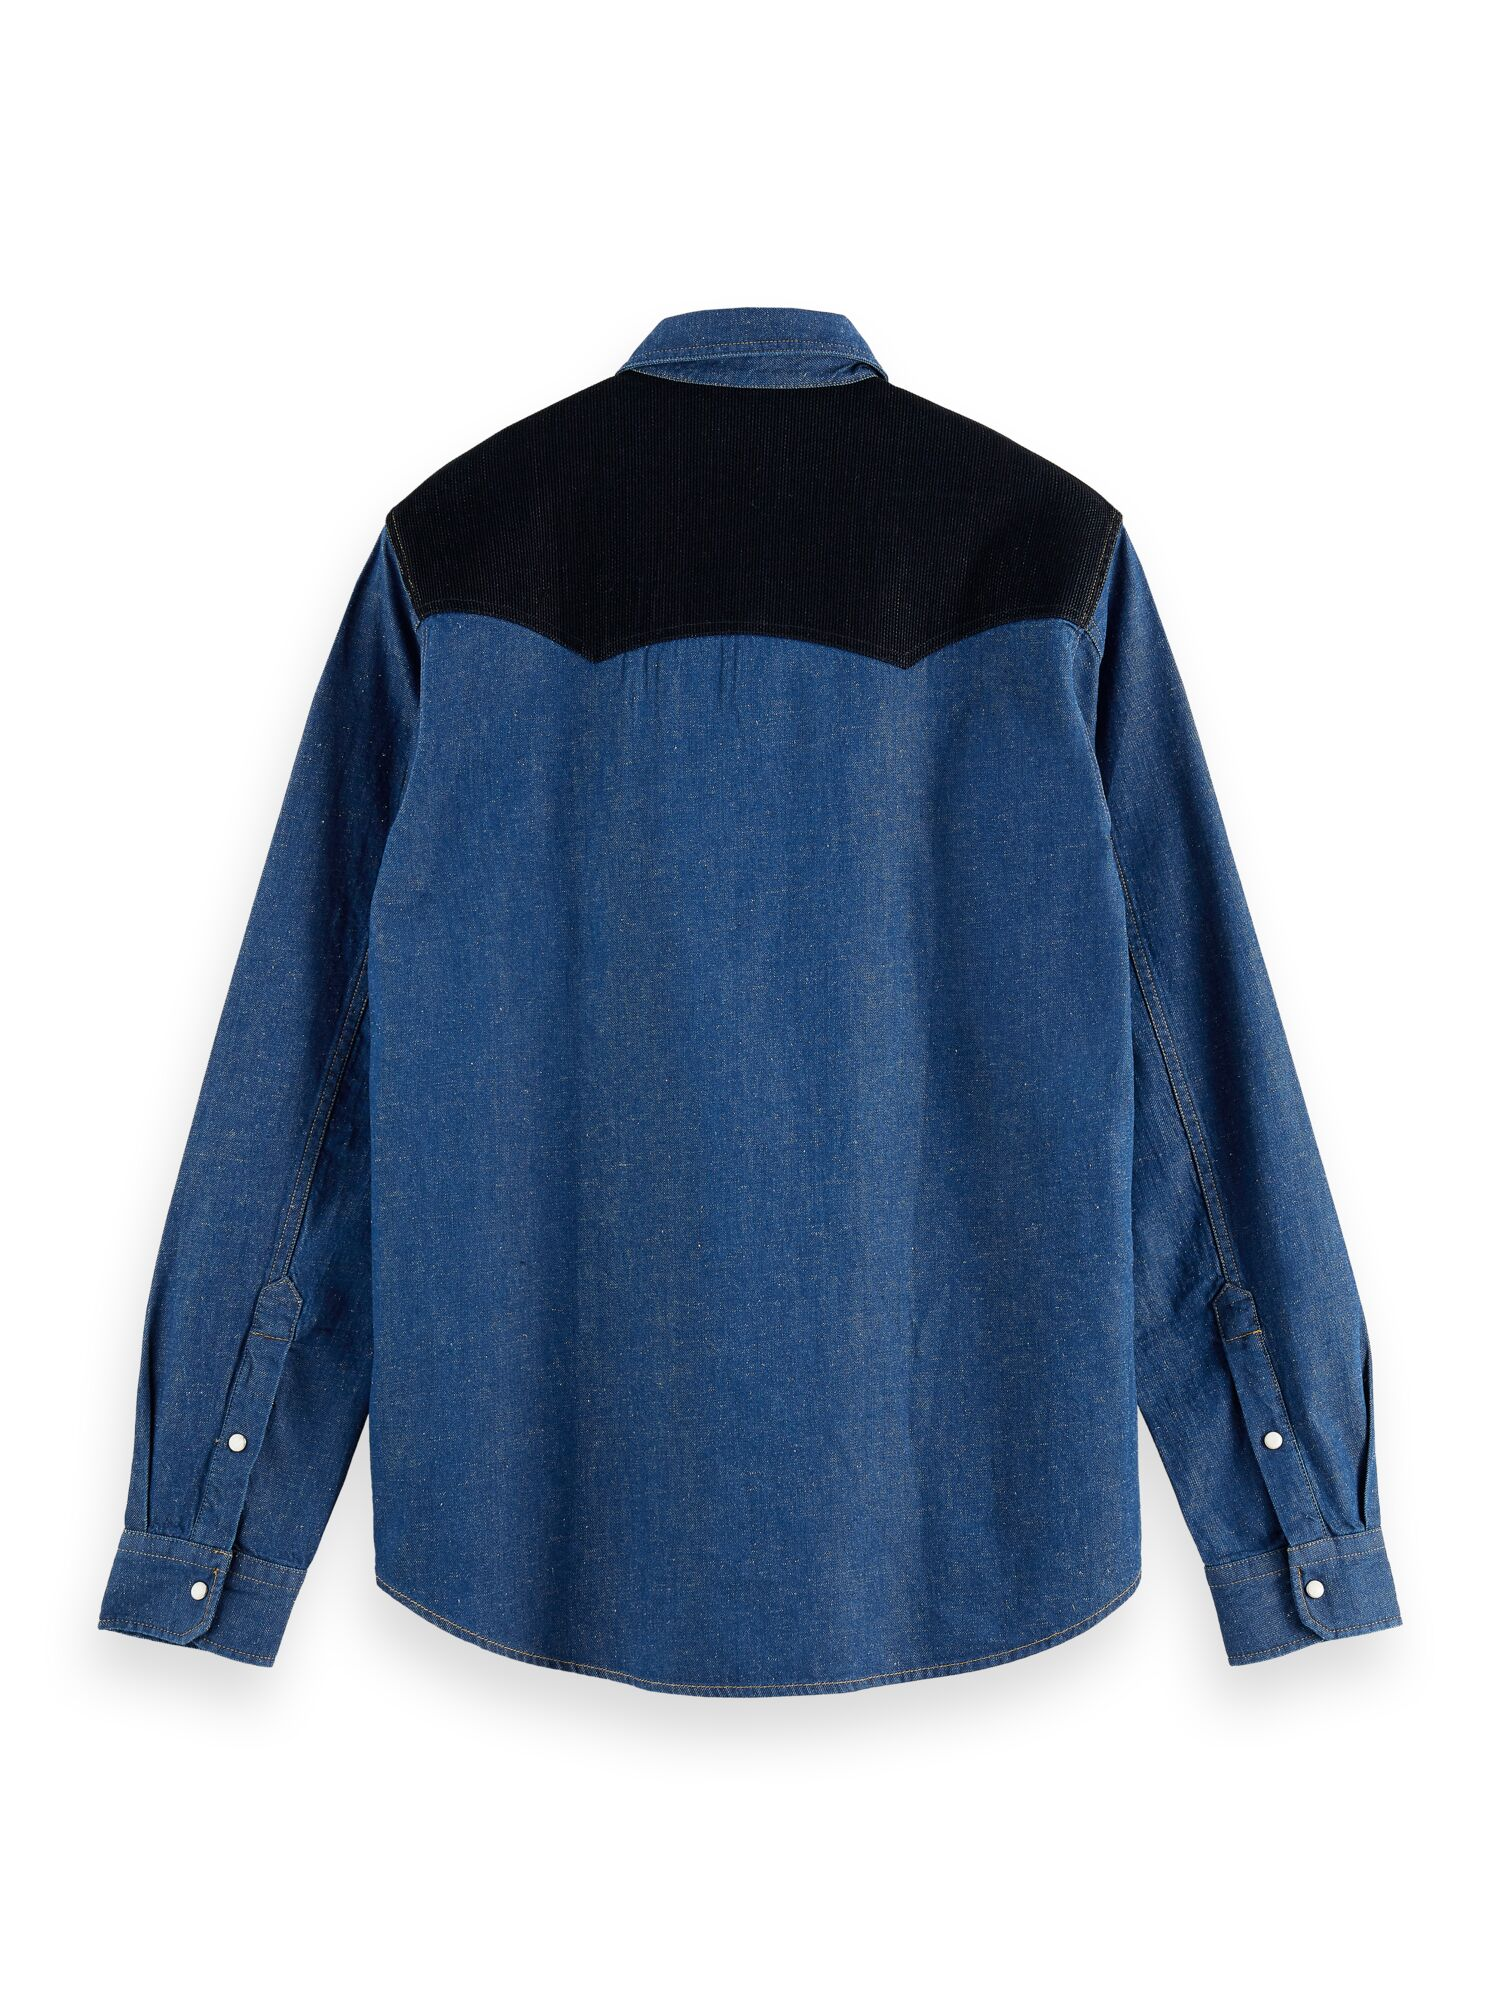 Scotch & Soda   RELAXED FIT - Ams Blauw denim overshirt with organic cotton